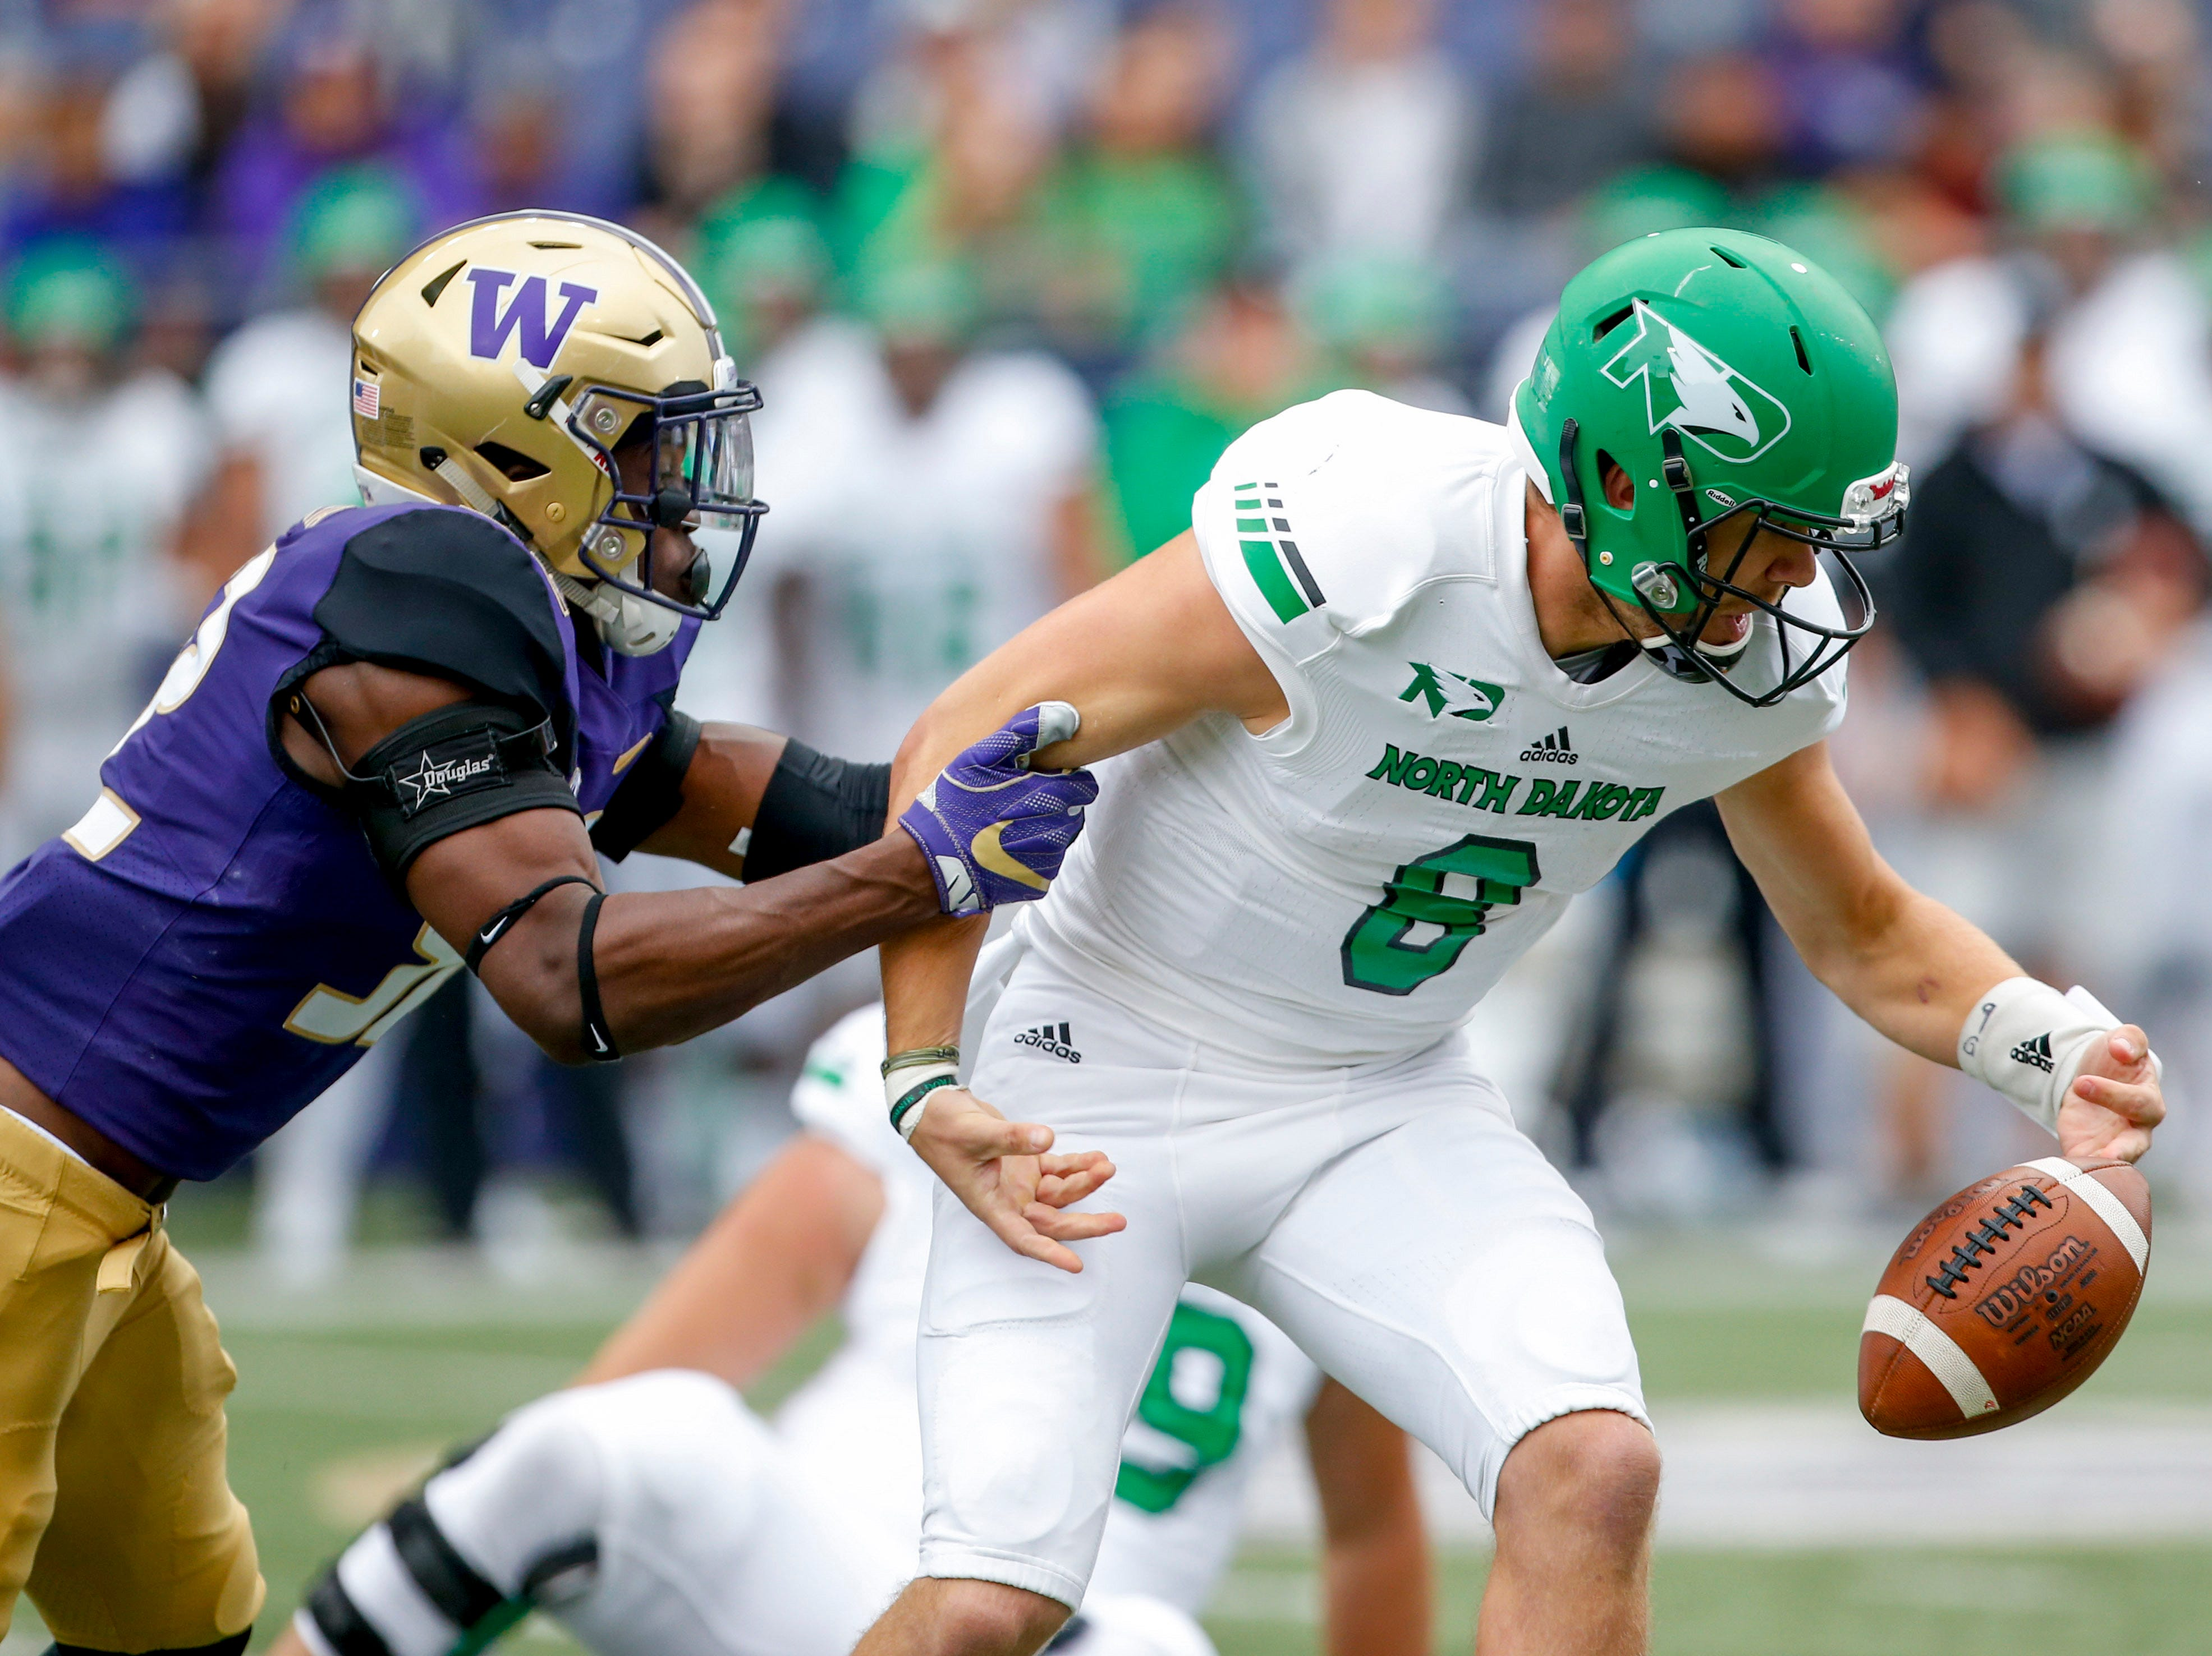 Washington Huskies linebacker Ariel Ngata (52) forces a fumble by North Dakota Fighting Hawks quarterback Nate Ketteringham (8) during the first quarter at Husky Stadium.